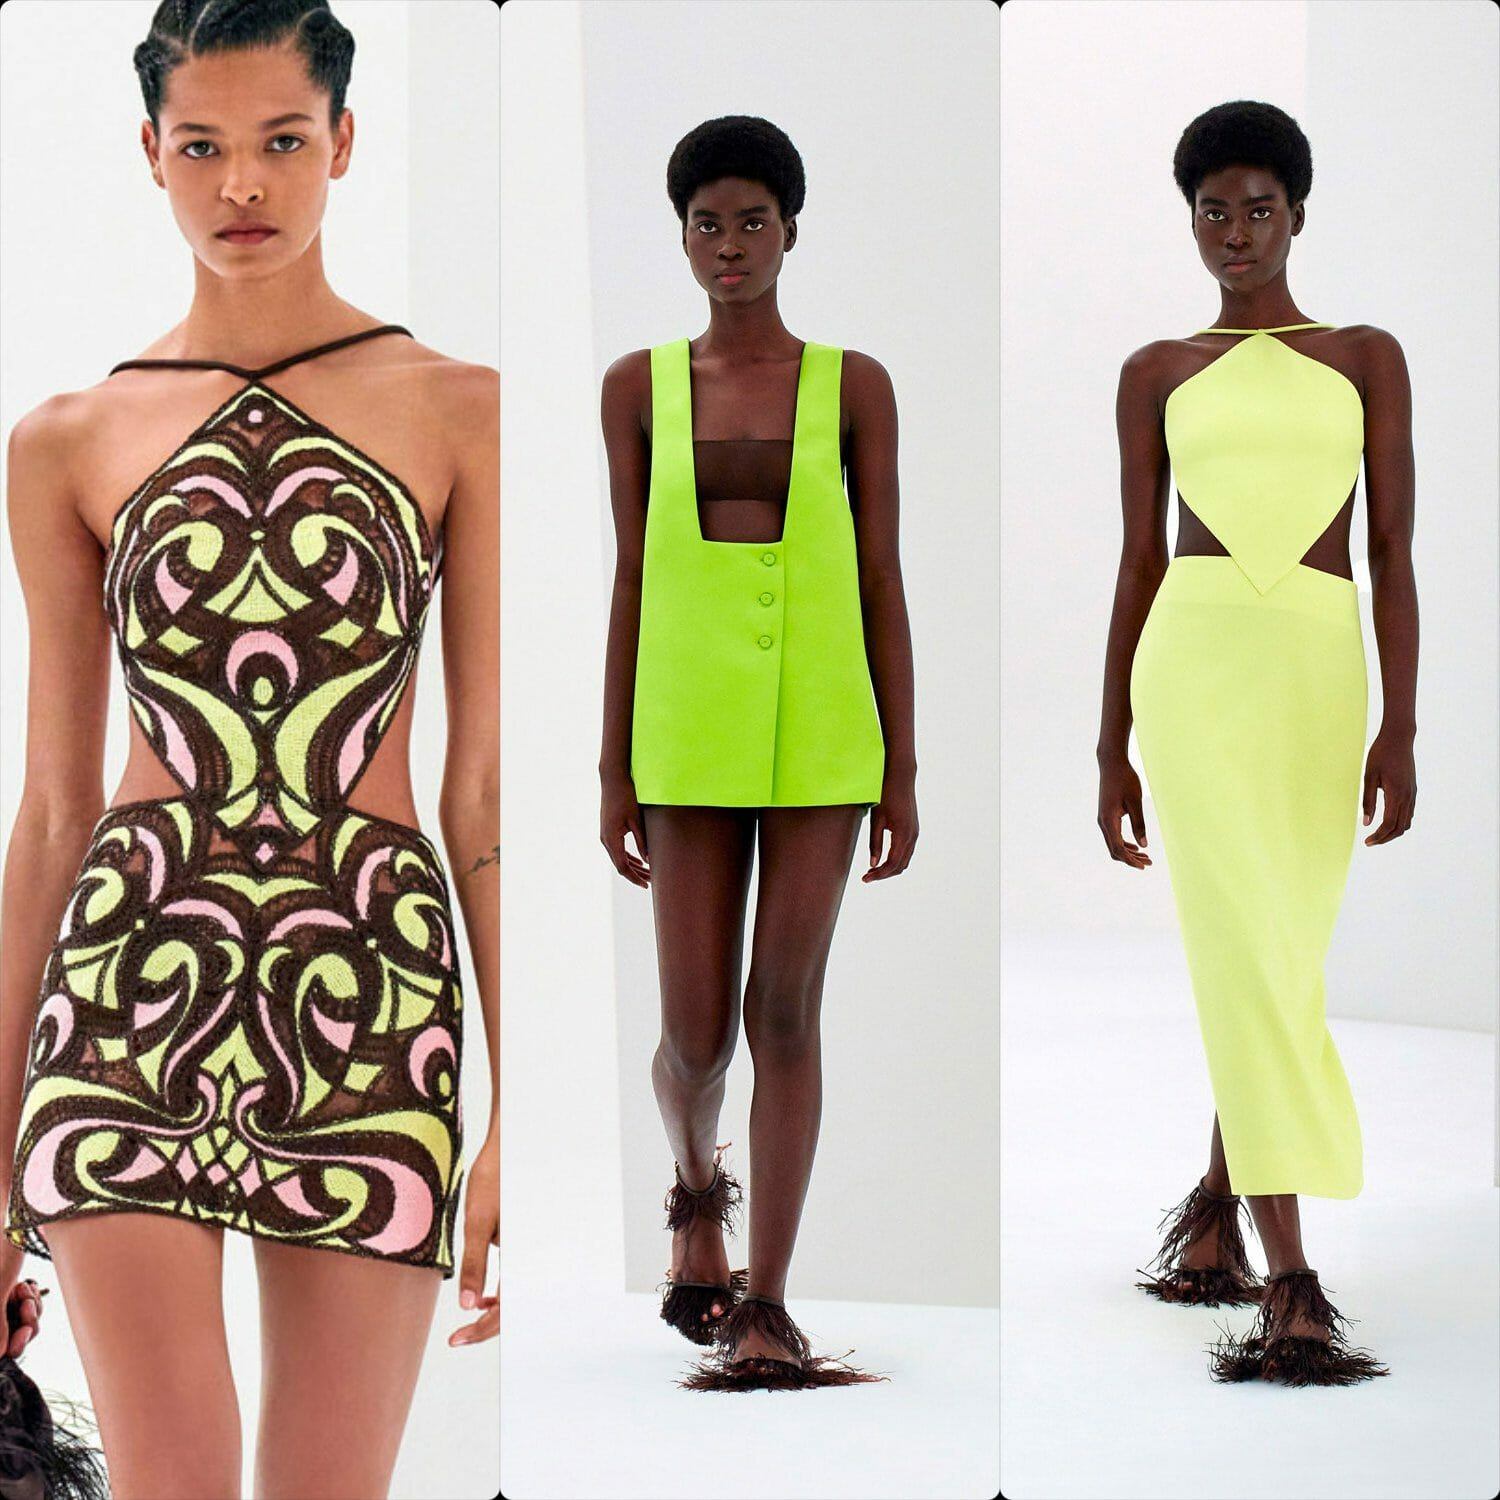 Emilio Pucci Spring Summer 2022 Milan. RUNWAY MAGAZINE ® Collections. RUNWAY NOW / RUNWAY NEW